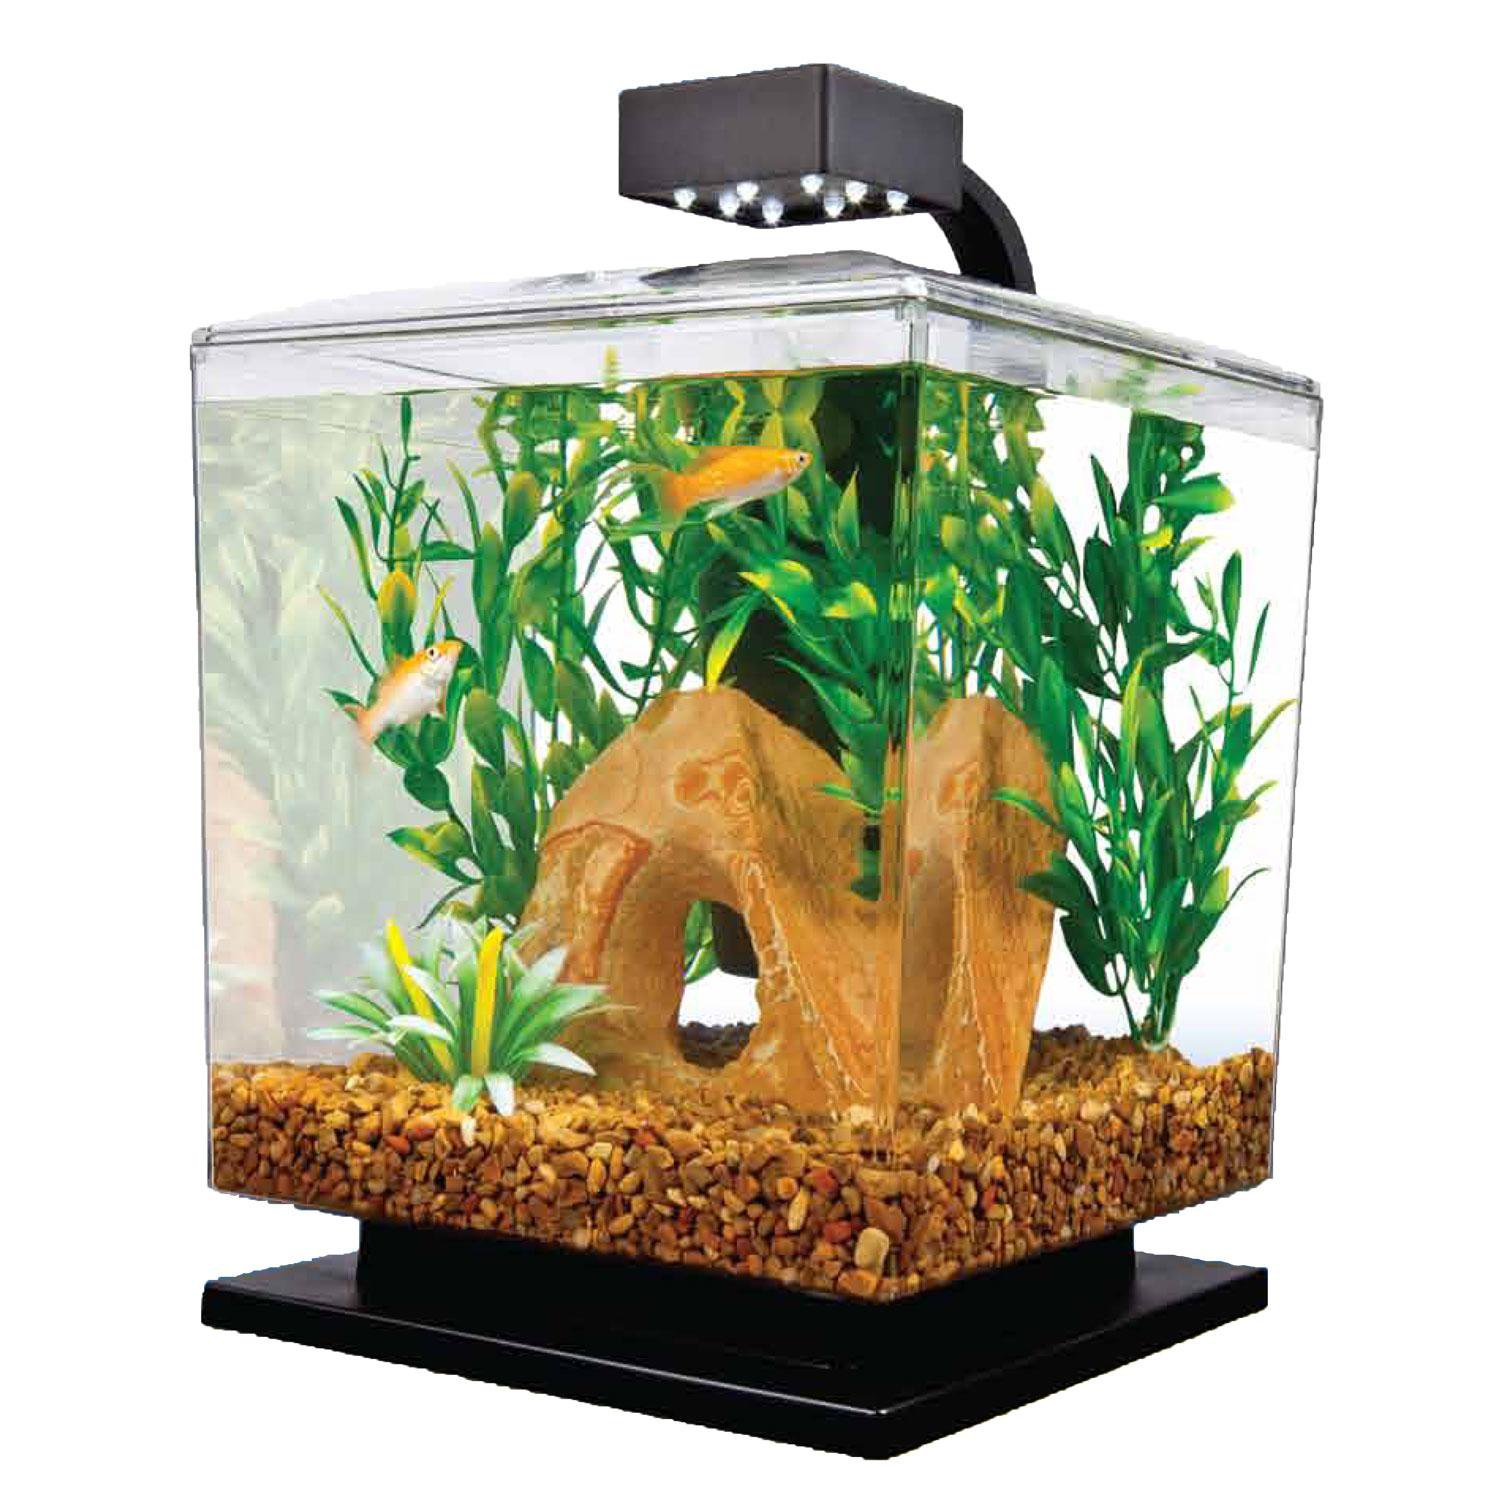 Tetra 15 Gallon LED Desktop Aquarium Kit